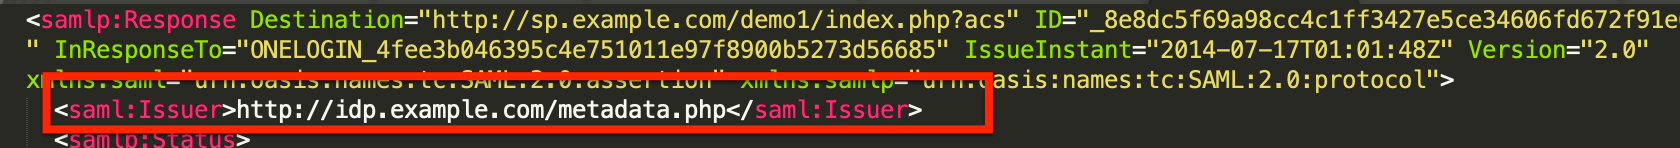 """Issuer"" in a SAML response"